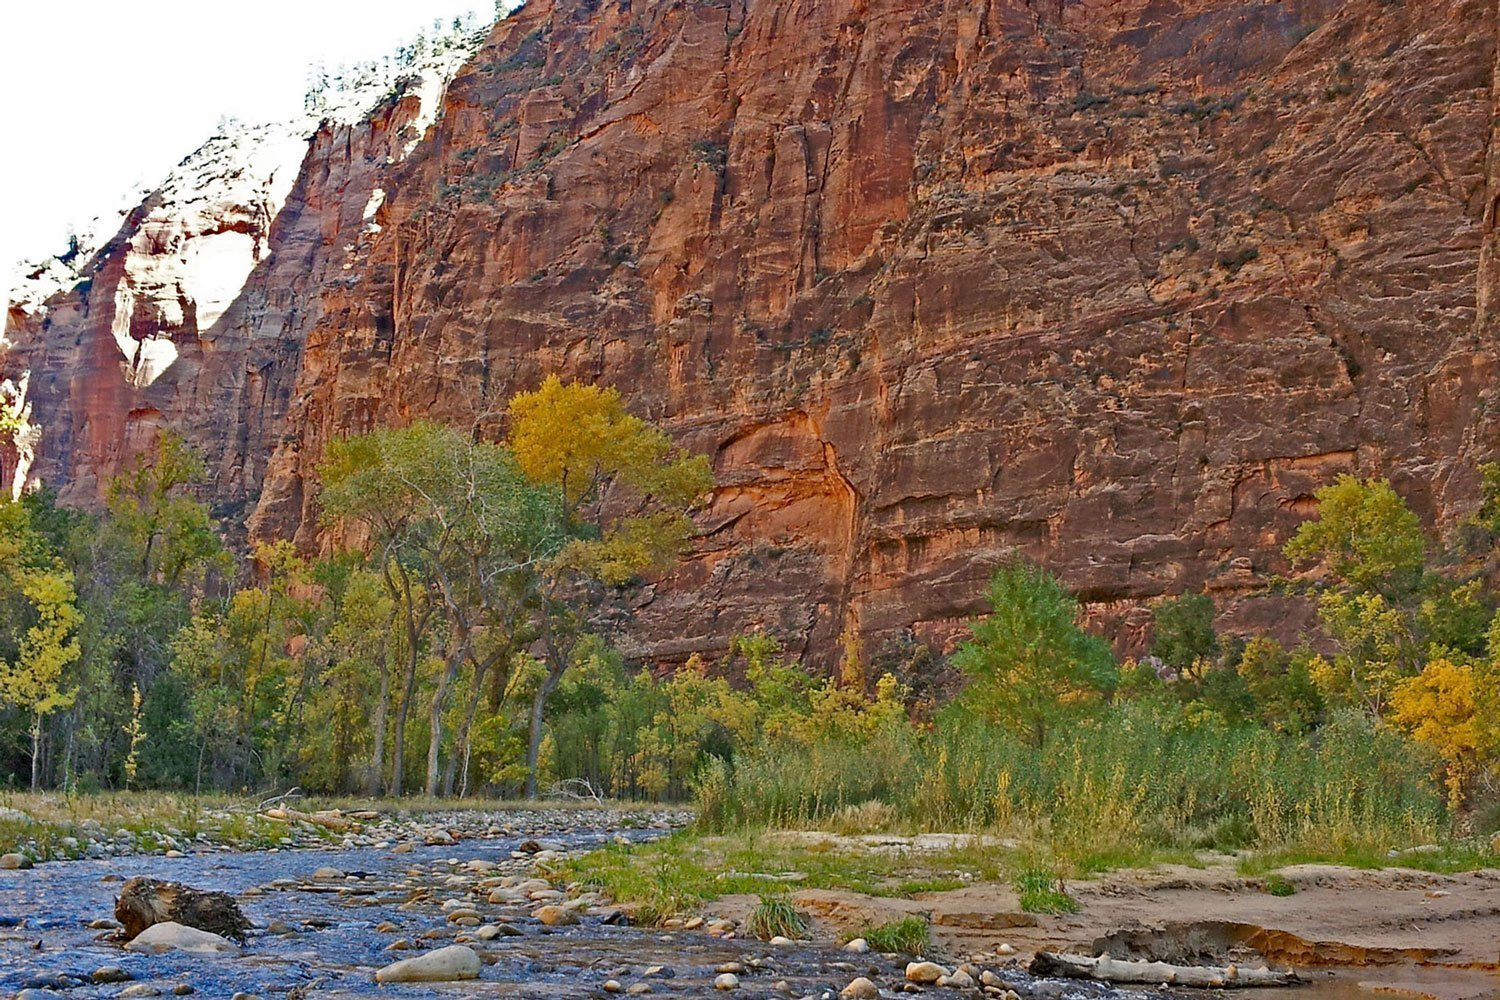 Canyon road trip takes you into Zion Canyon, Utah